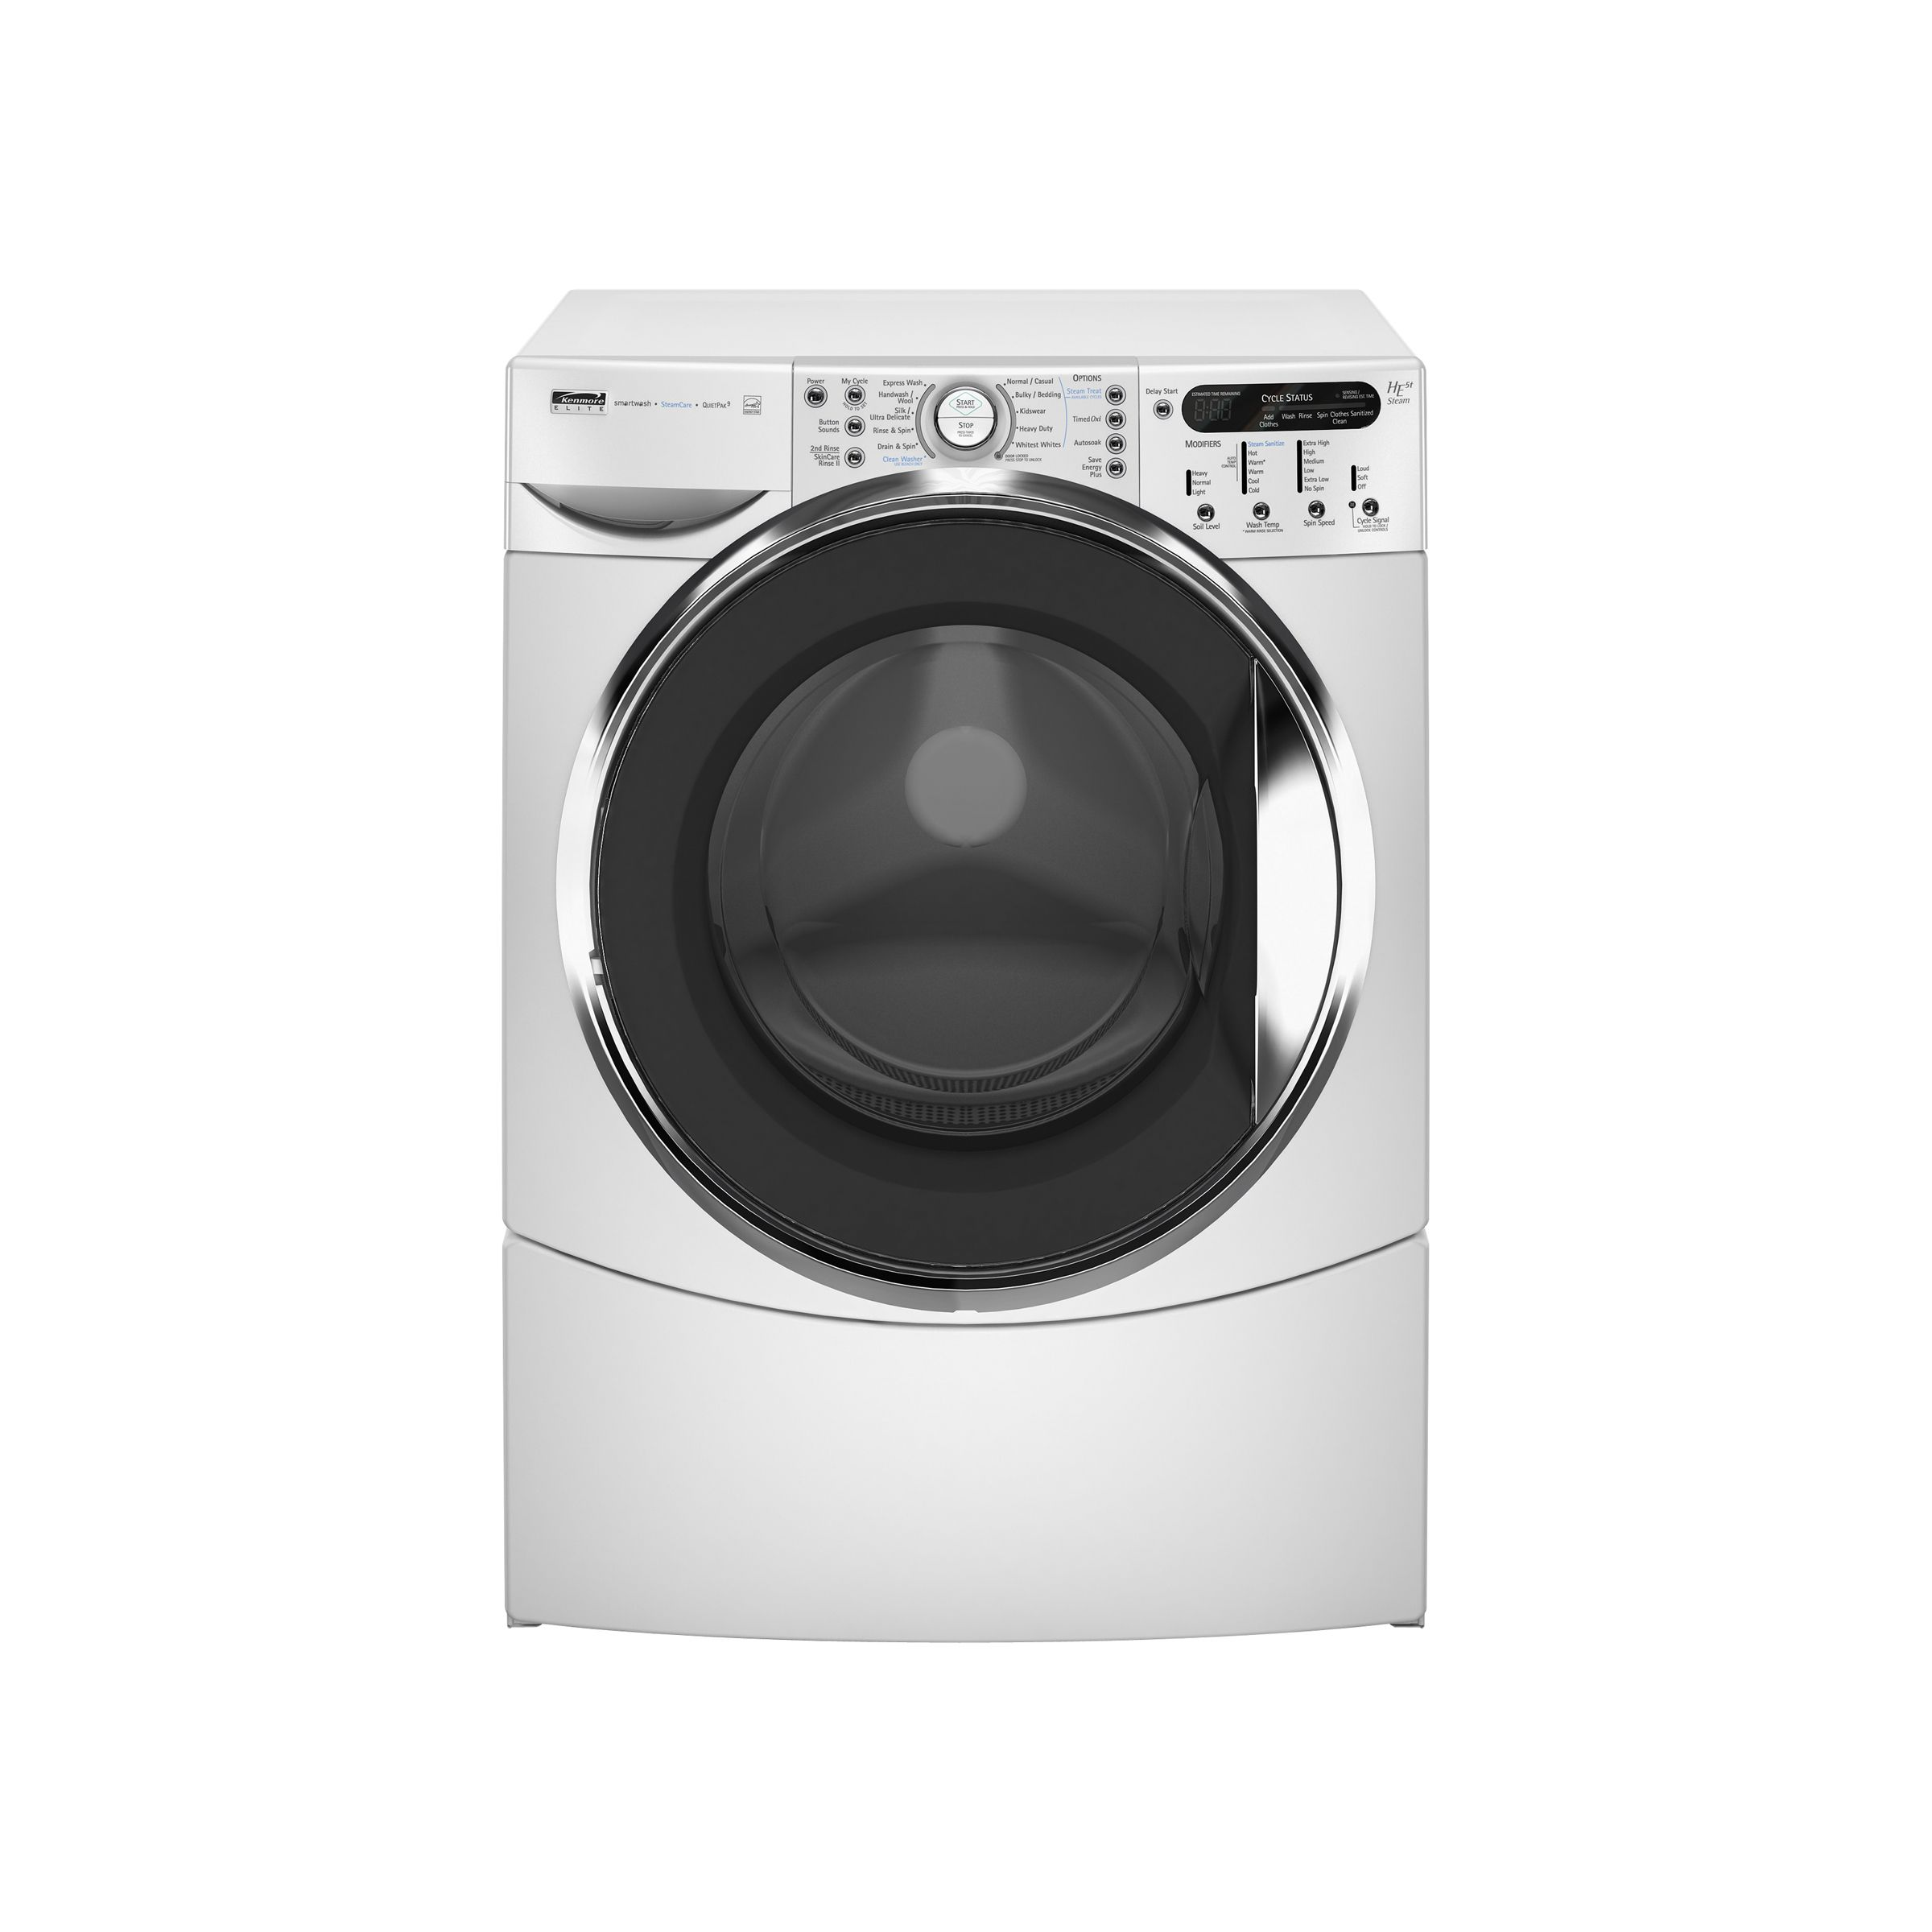 whirlpool dryer just beeps 2005 jeep lj wiring diagram how to remove harness kenmore he 5t 42